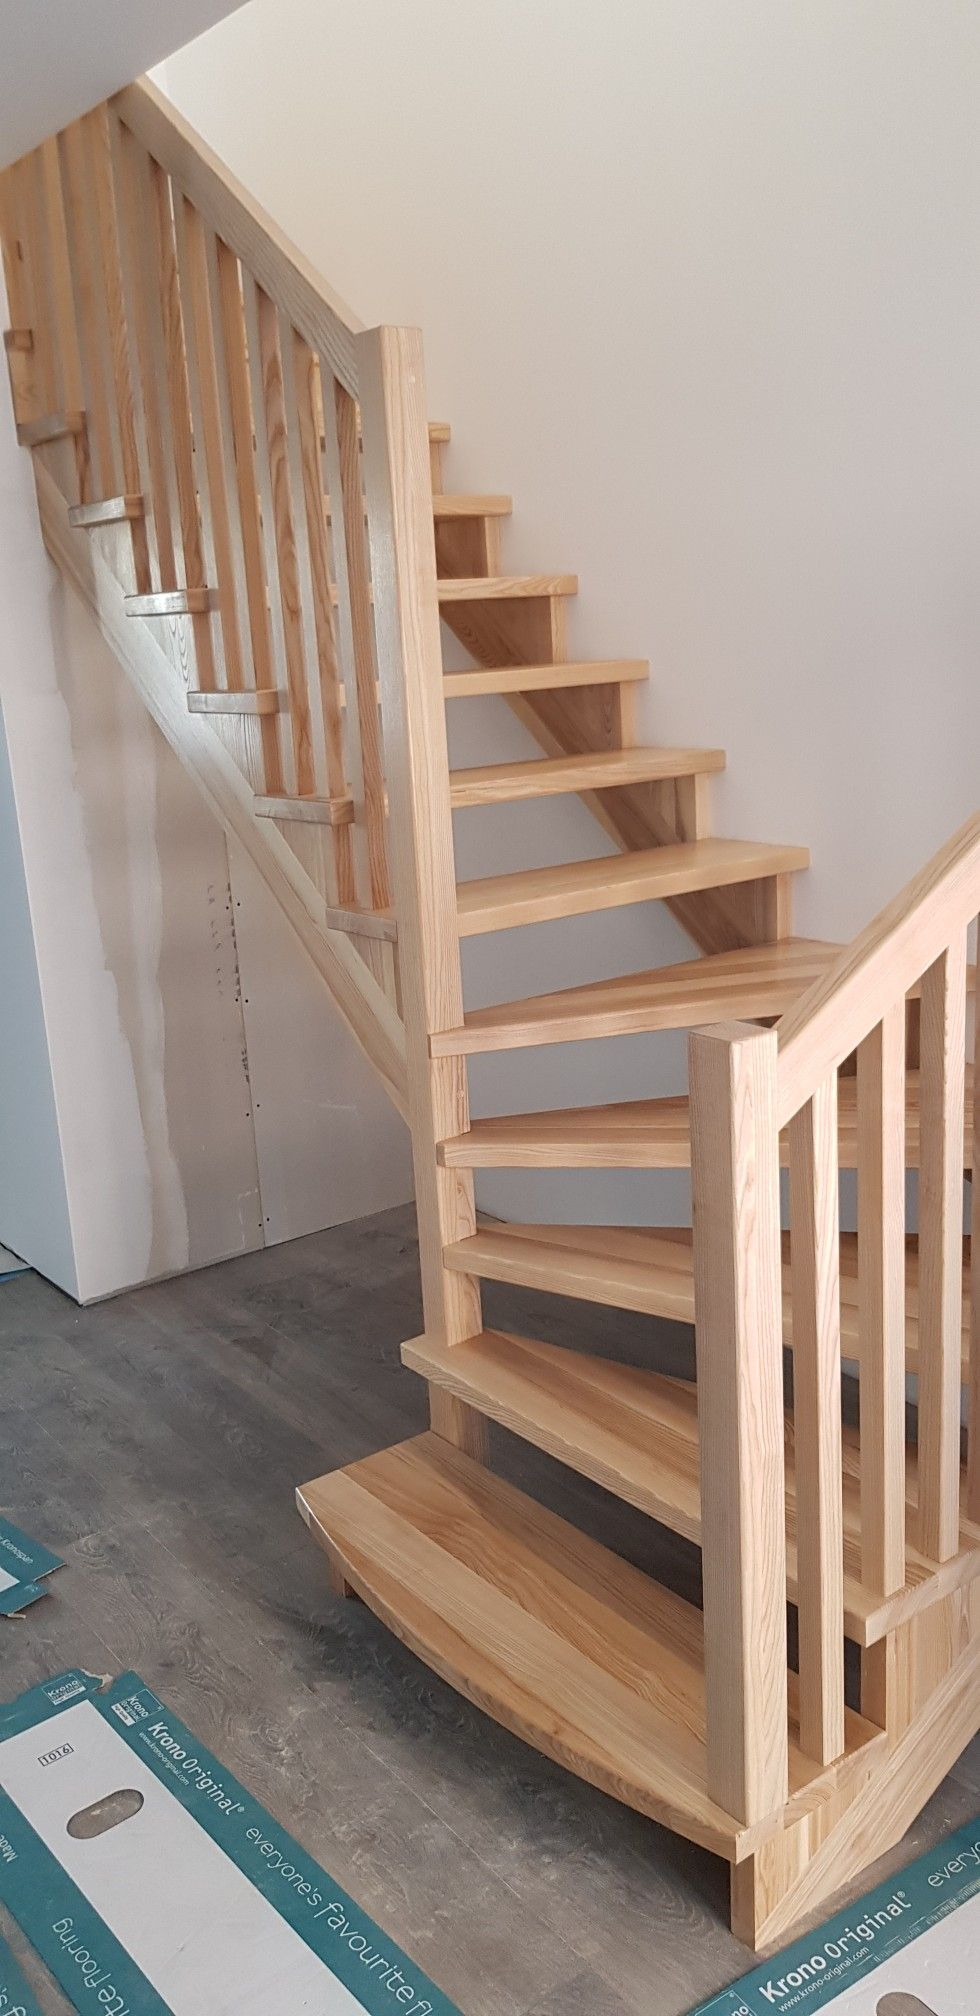 Compact Wooden Staircase For Small Spaces 30 Square Meters | Stairs For Small Spaces | Modern | Living Room | Beautiful | Design | Metal